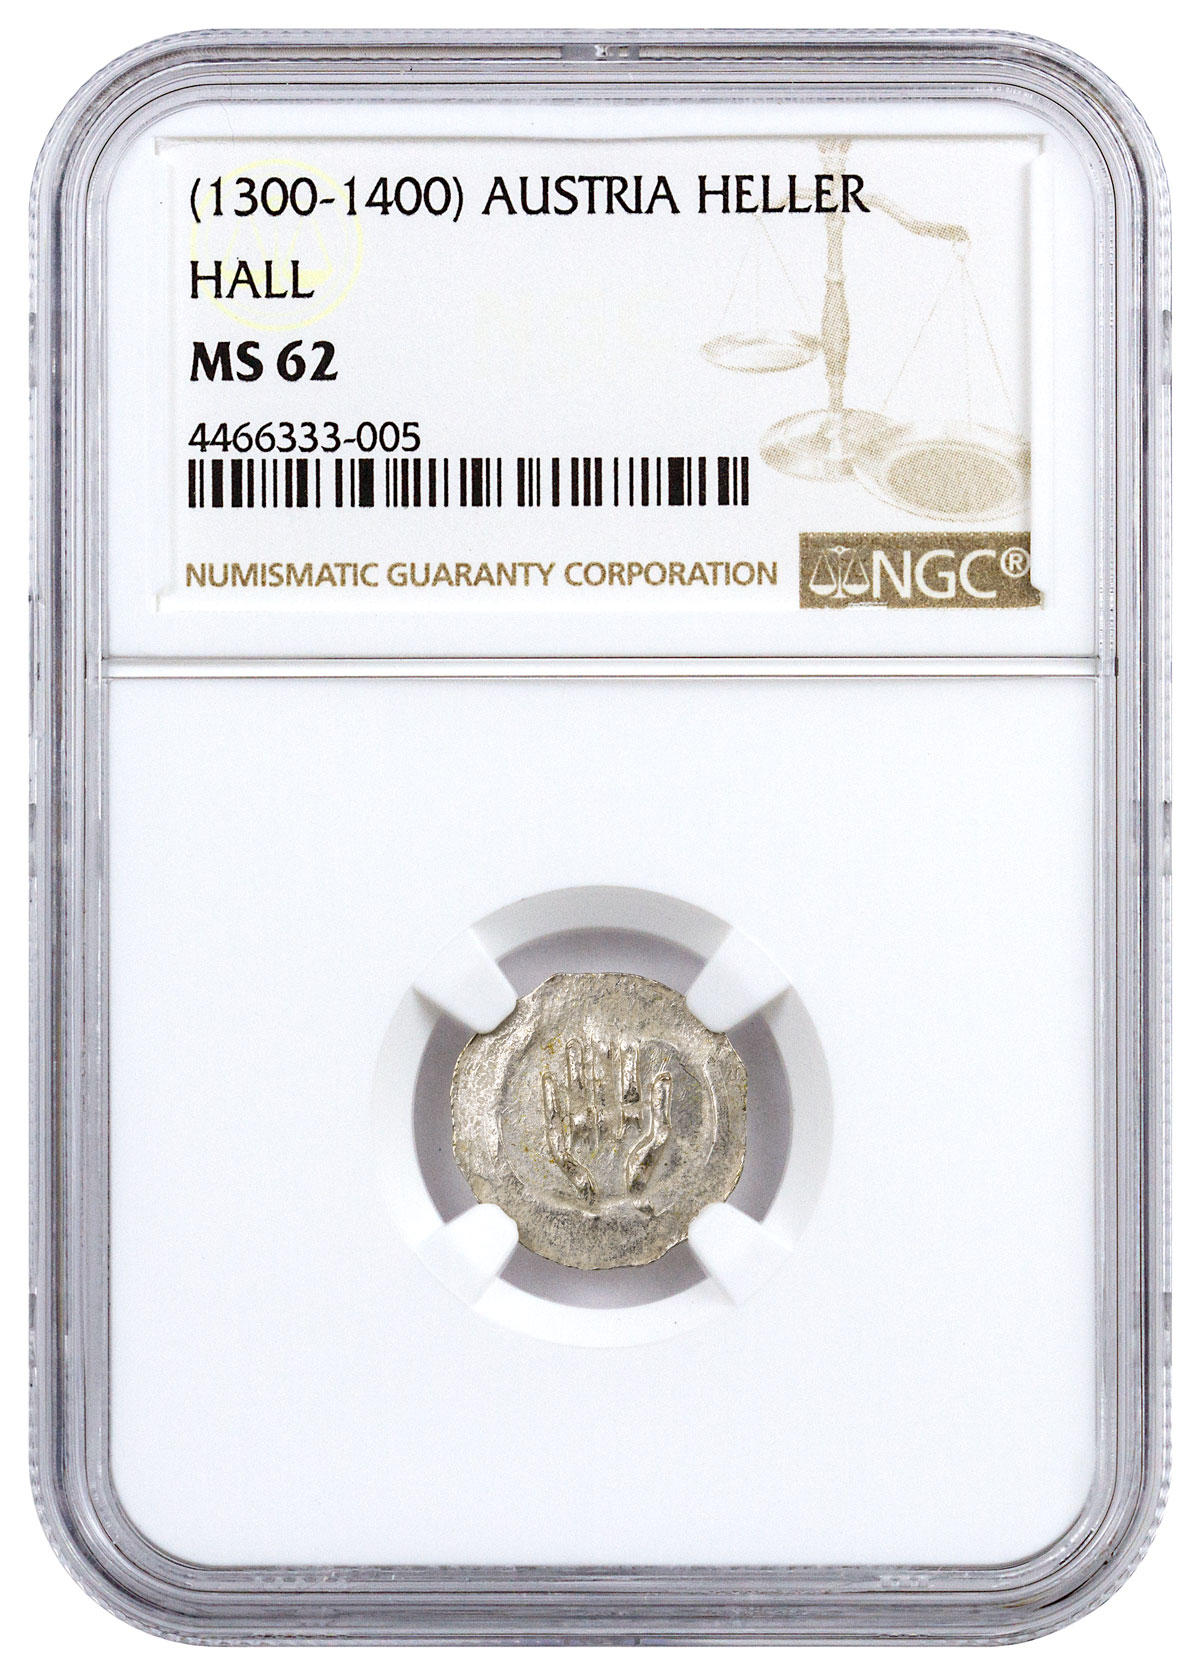 1300-1400 Austria Hall Silver Hand Heller NGC MS62 Story Vault